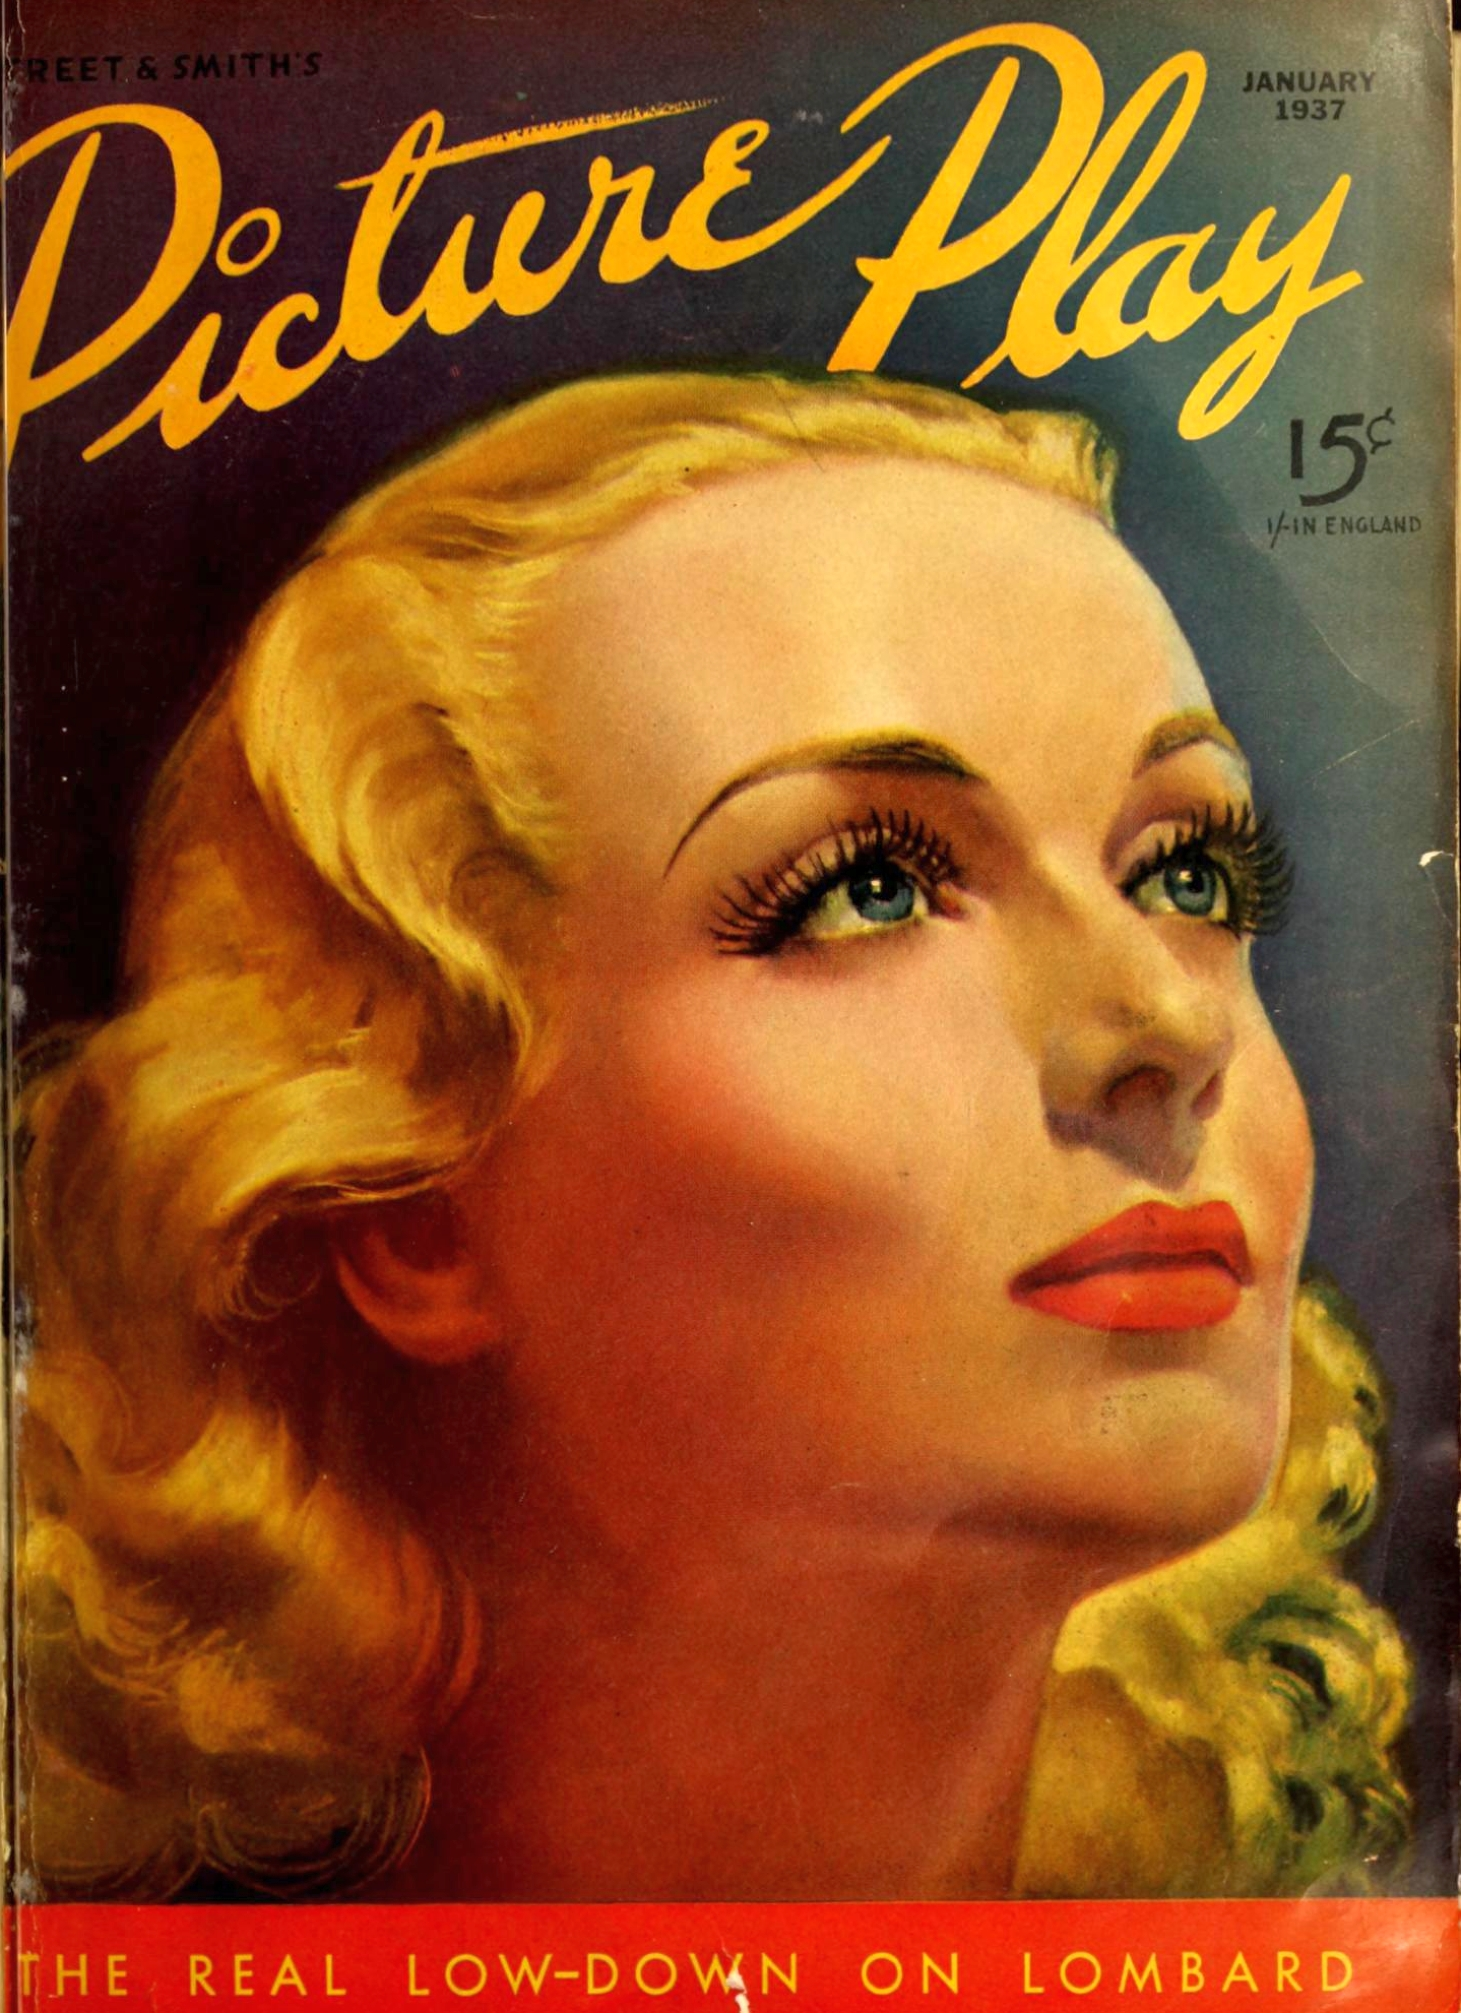 carole lombard picture play january 1937 cover large